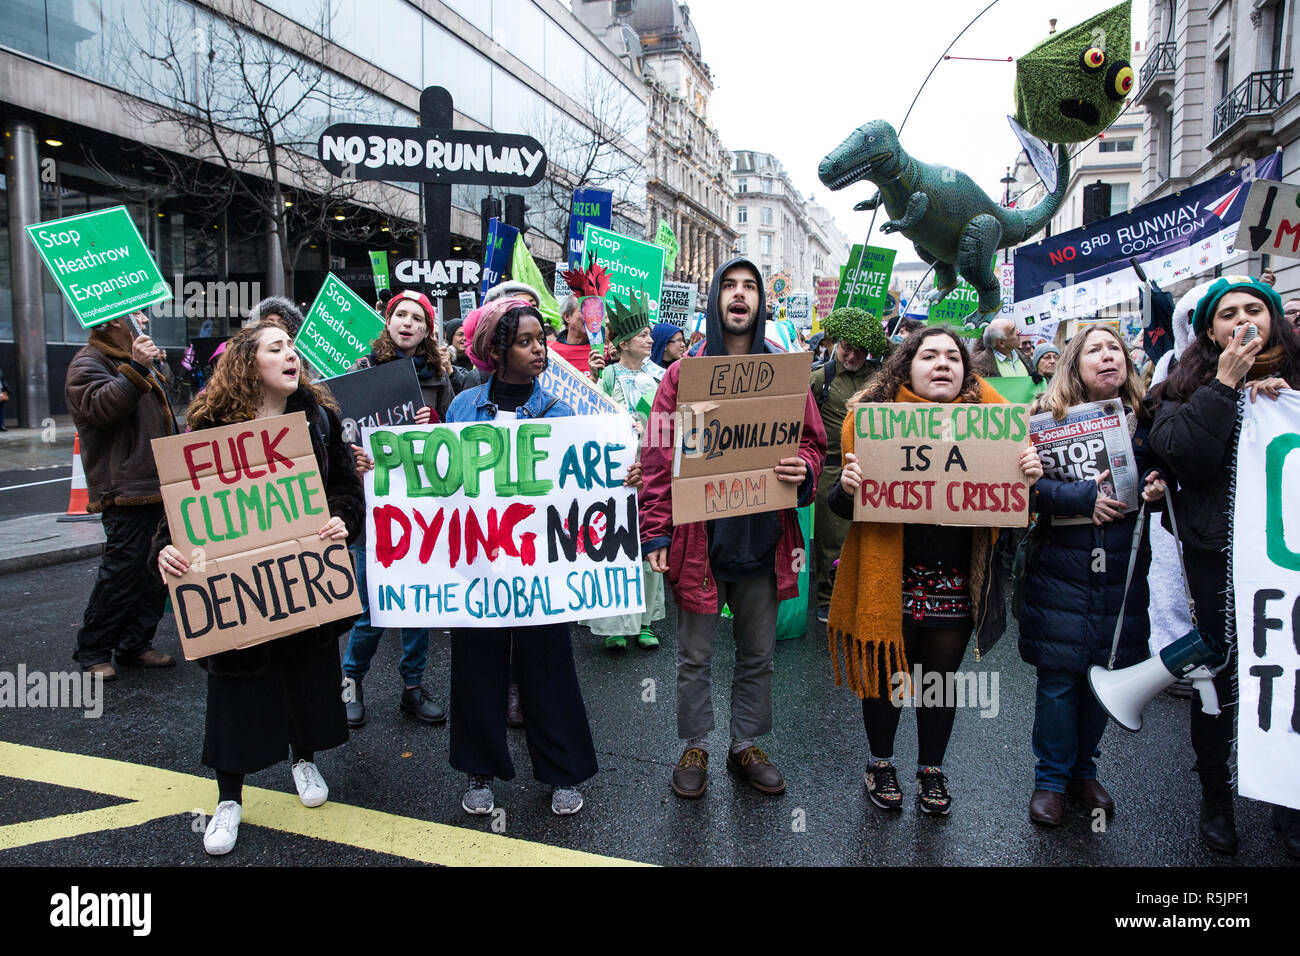 London, UK. 1st December, 2018. Environmental campaigners pass in front of the Brazilian embassy on the Together for Climate Justice demonstration in protest against Government policies in relation to climate change, including Heathrow expansion and fracking. Following a rally outside the Polish embassy, chosen to highlight the UN's Katowice Climate Change Conference which begins tomorrow, protesters marched to Downing Street. Credit: Mark Kerrison/Alamy Live News Stock Photo